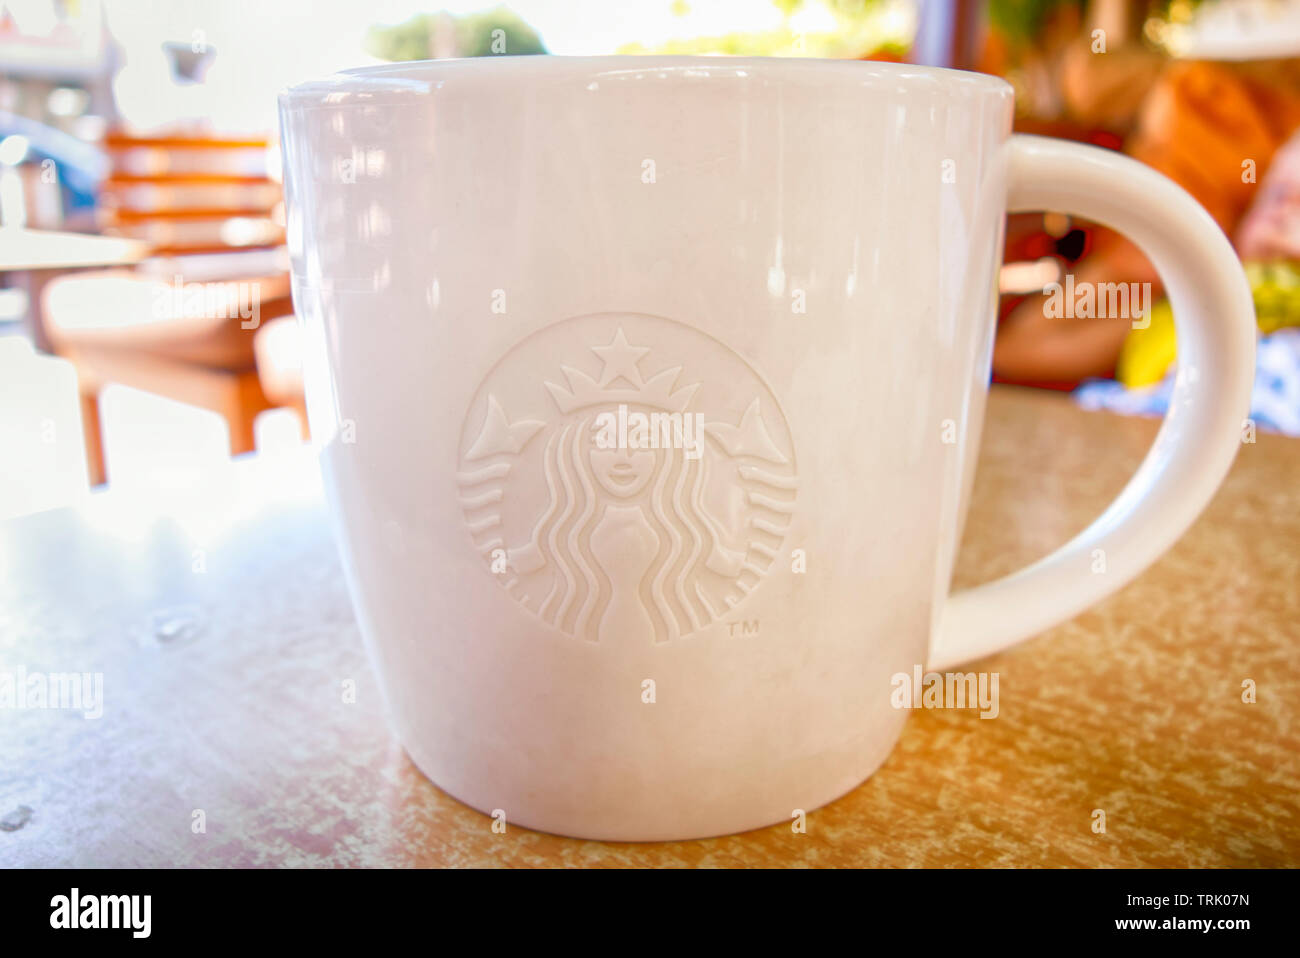 Nobody Photosamp; Cup Starbucks Coffee Nobody Photosamp; Coffee Starbucks Cup Starbucks AR43jL5